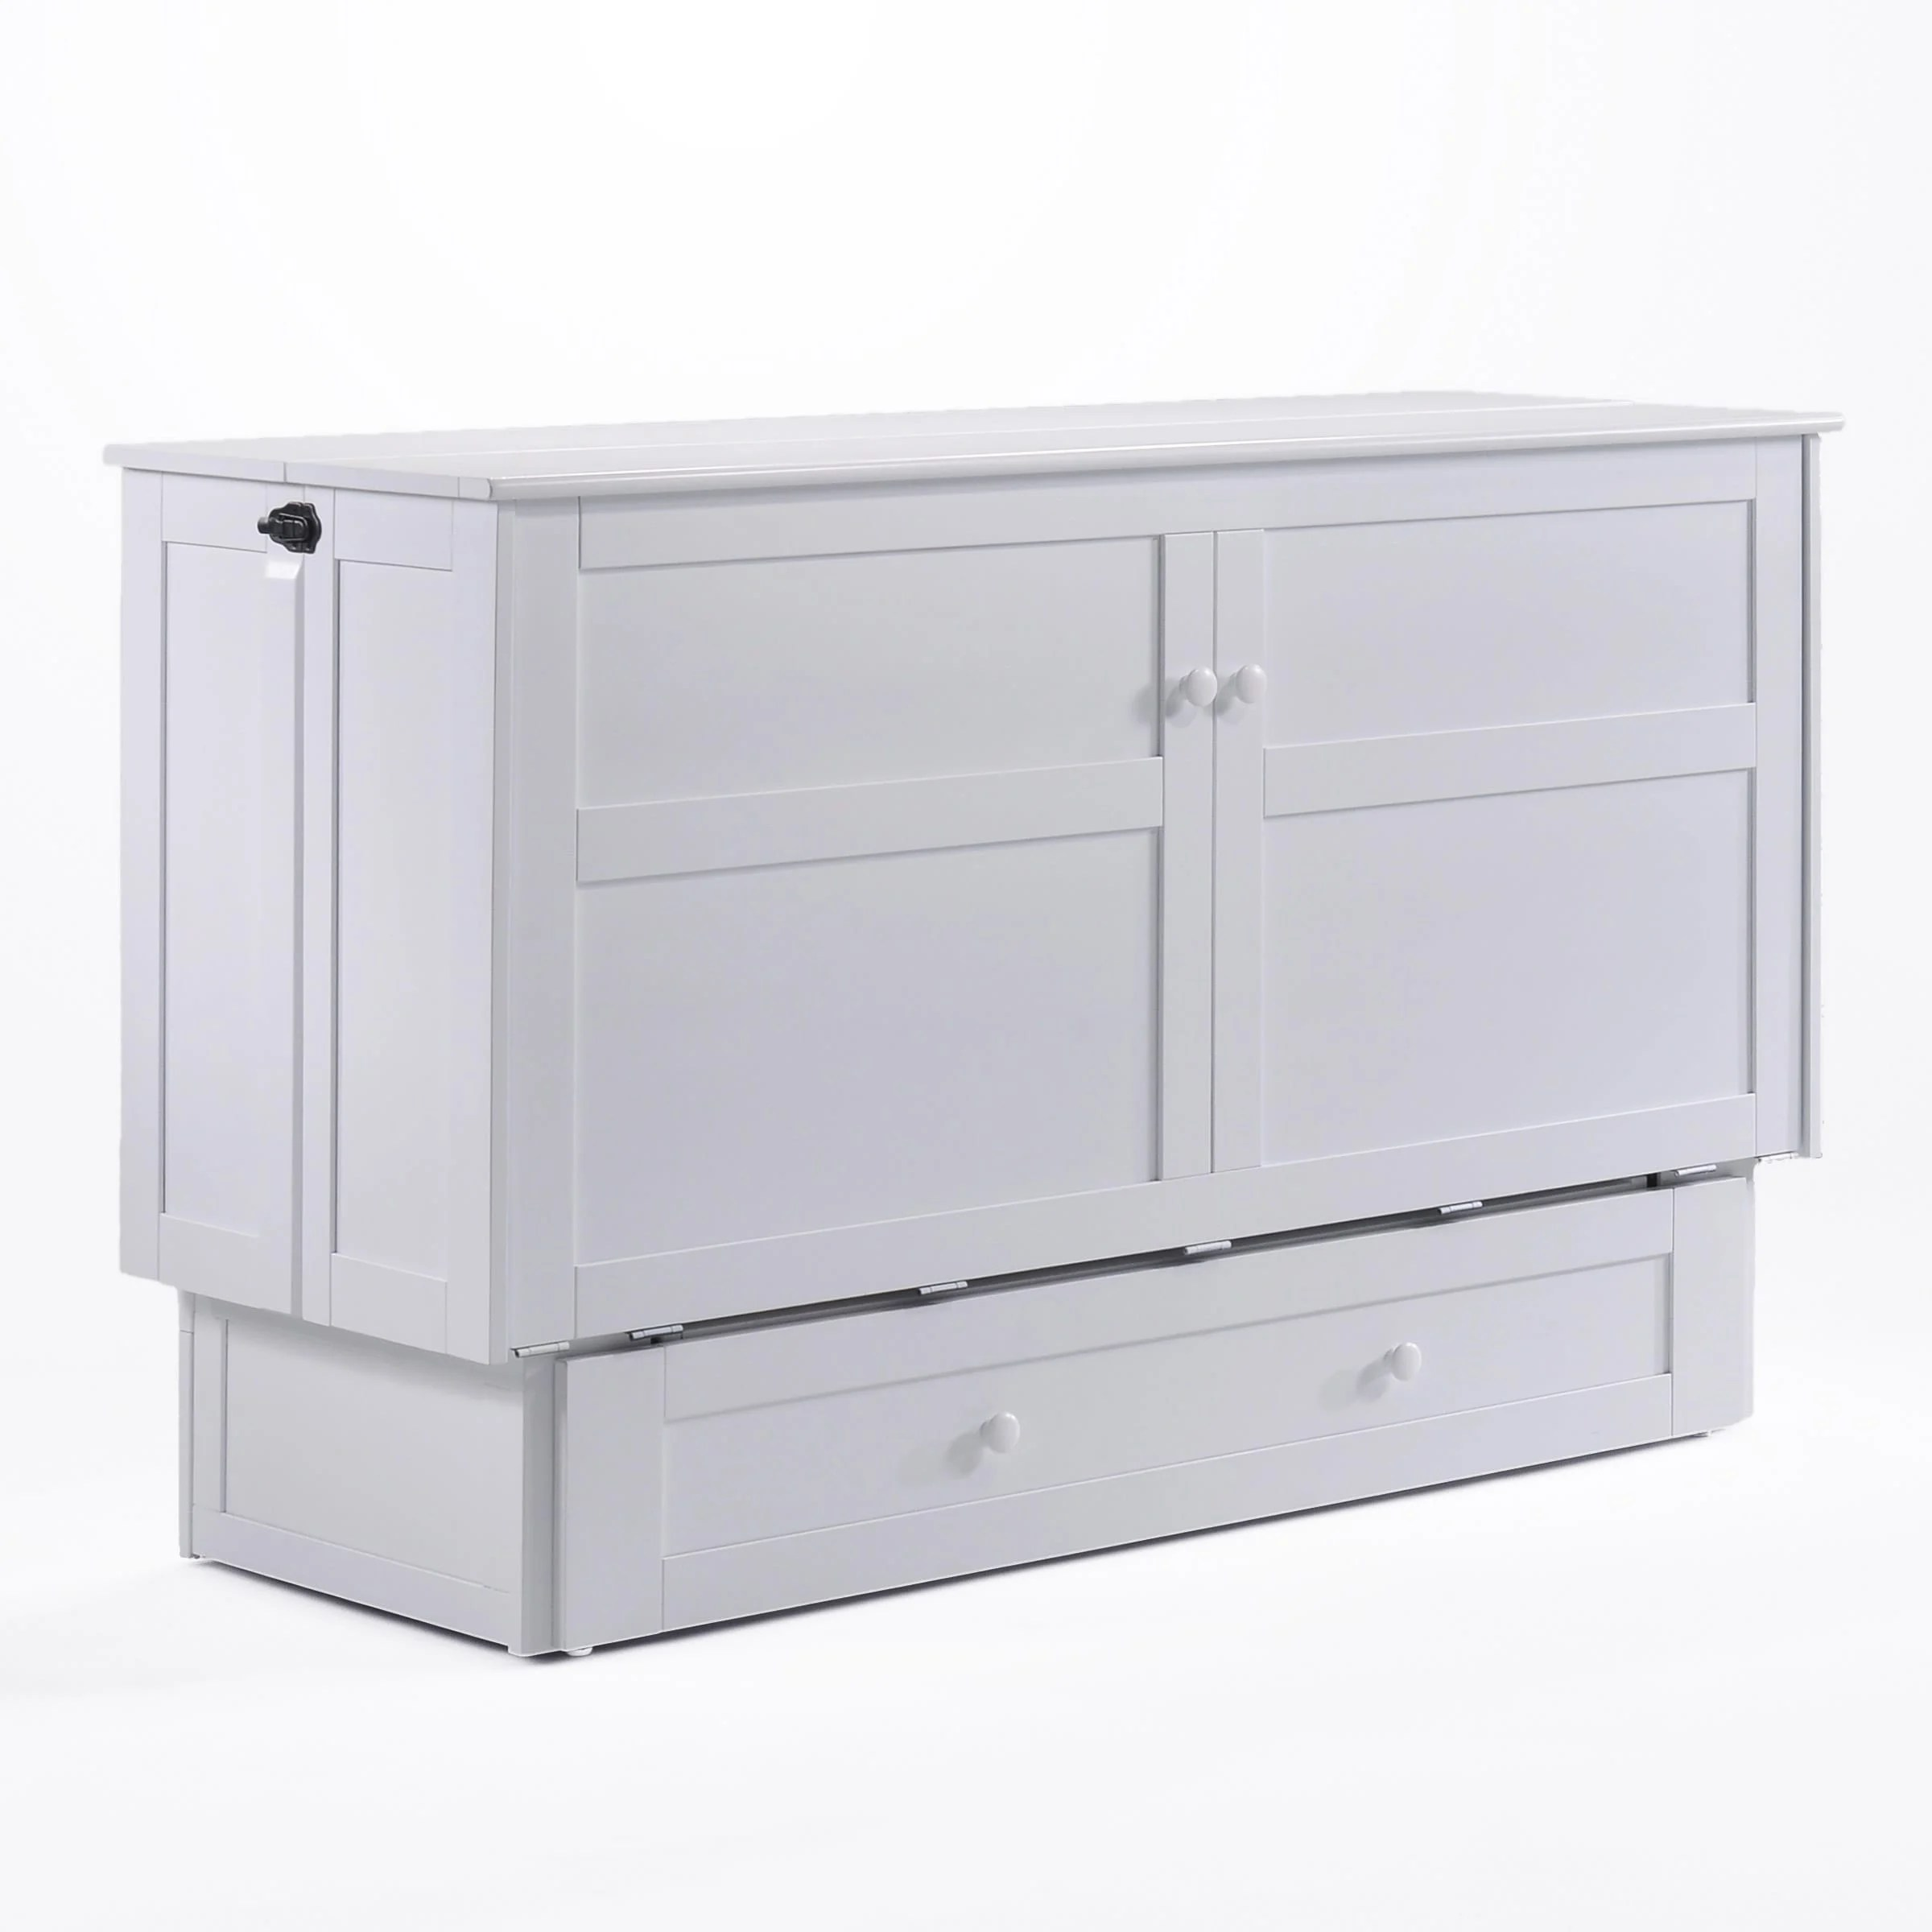 Clover Queen Murphy Cabinet Bed White by NightDay Furniture